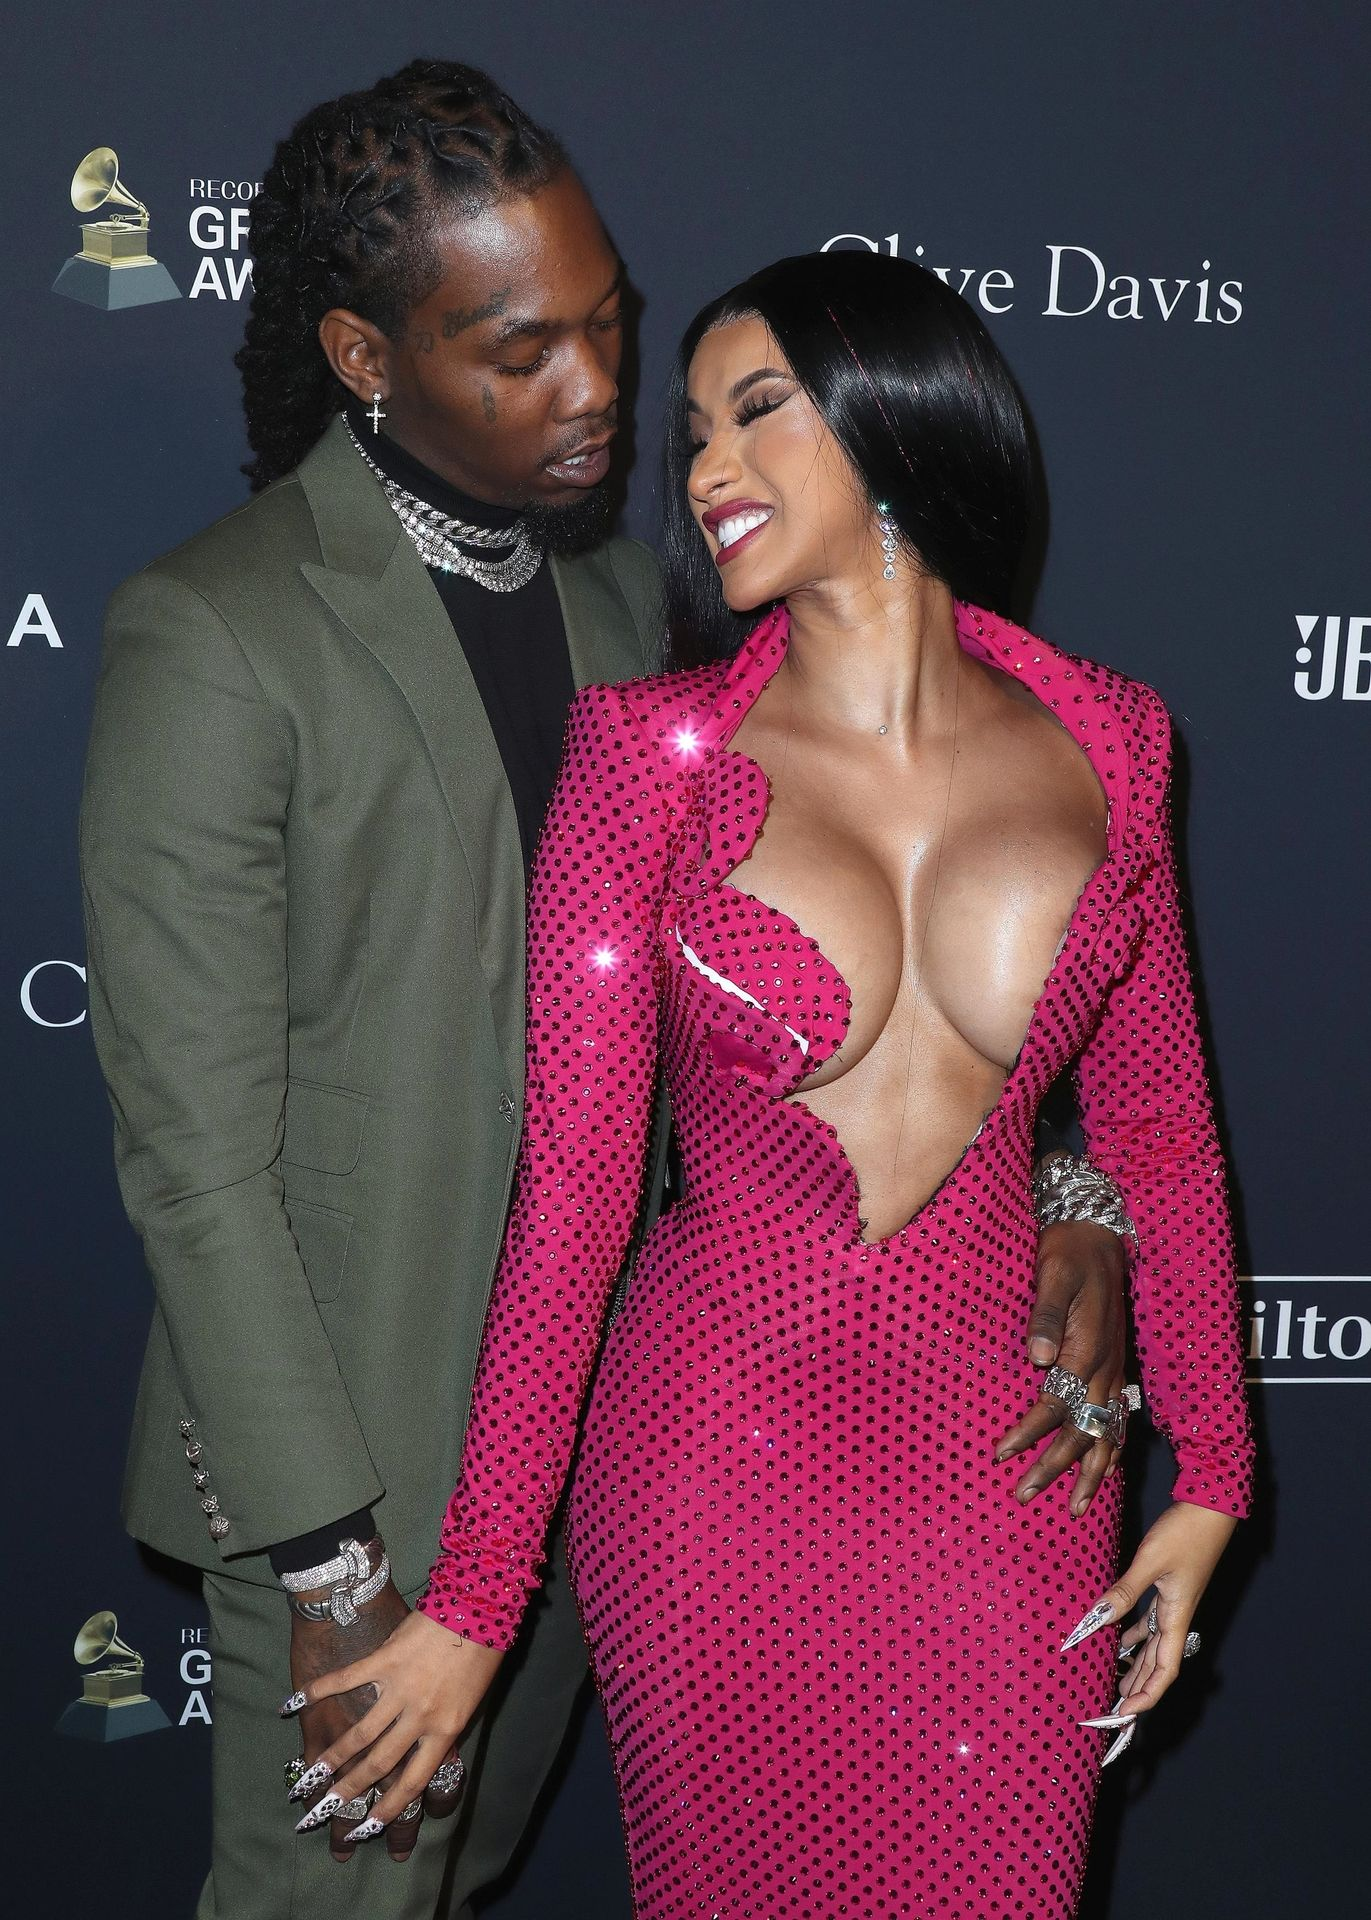 Offset Covers Cardi B's Boobs To Avoid Wardrobe Malfunction At Clive Davis Pre Grammy Party 0040